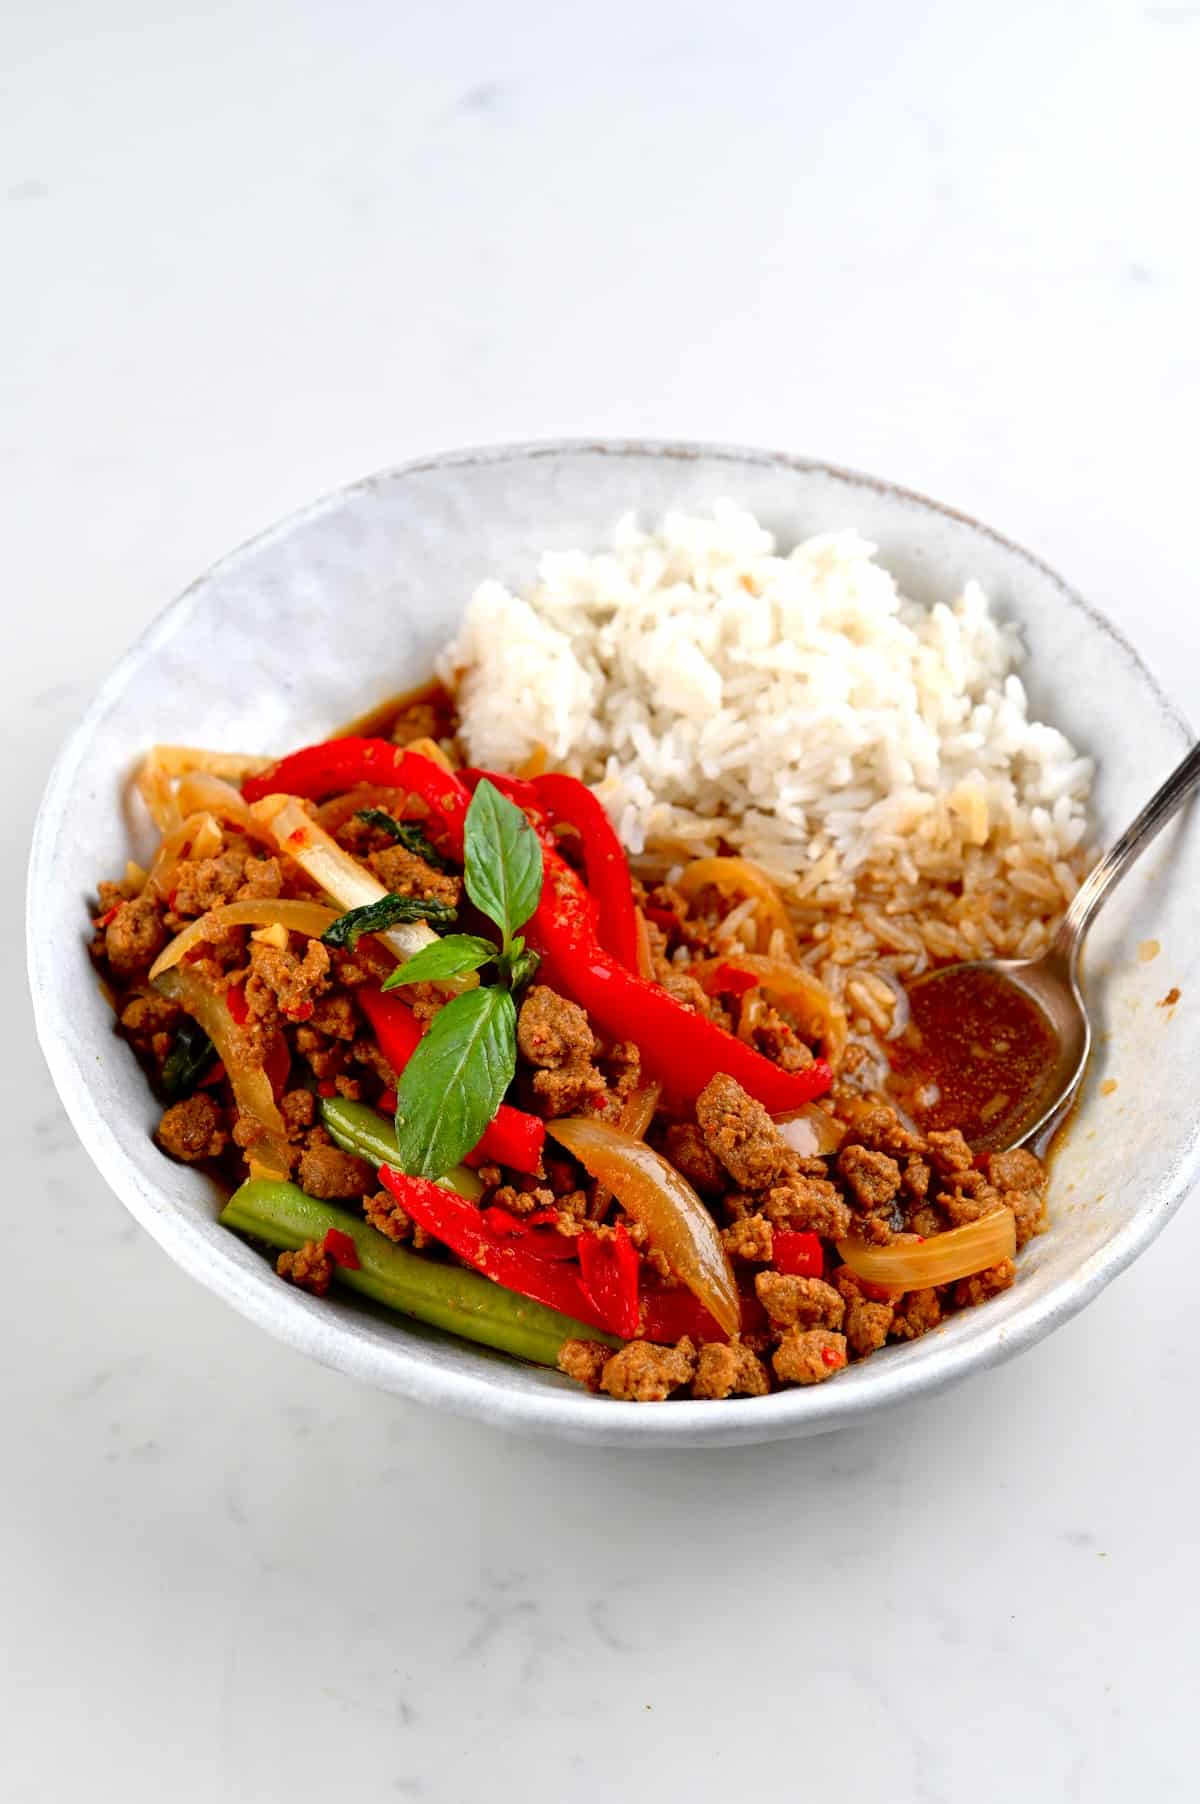 Thai basil vegan beef with soy mince and rice served in a bowl